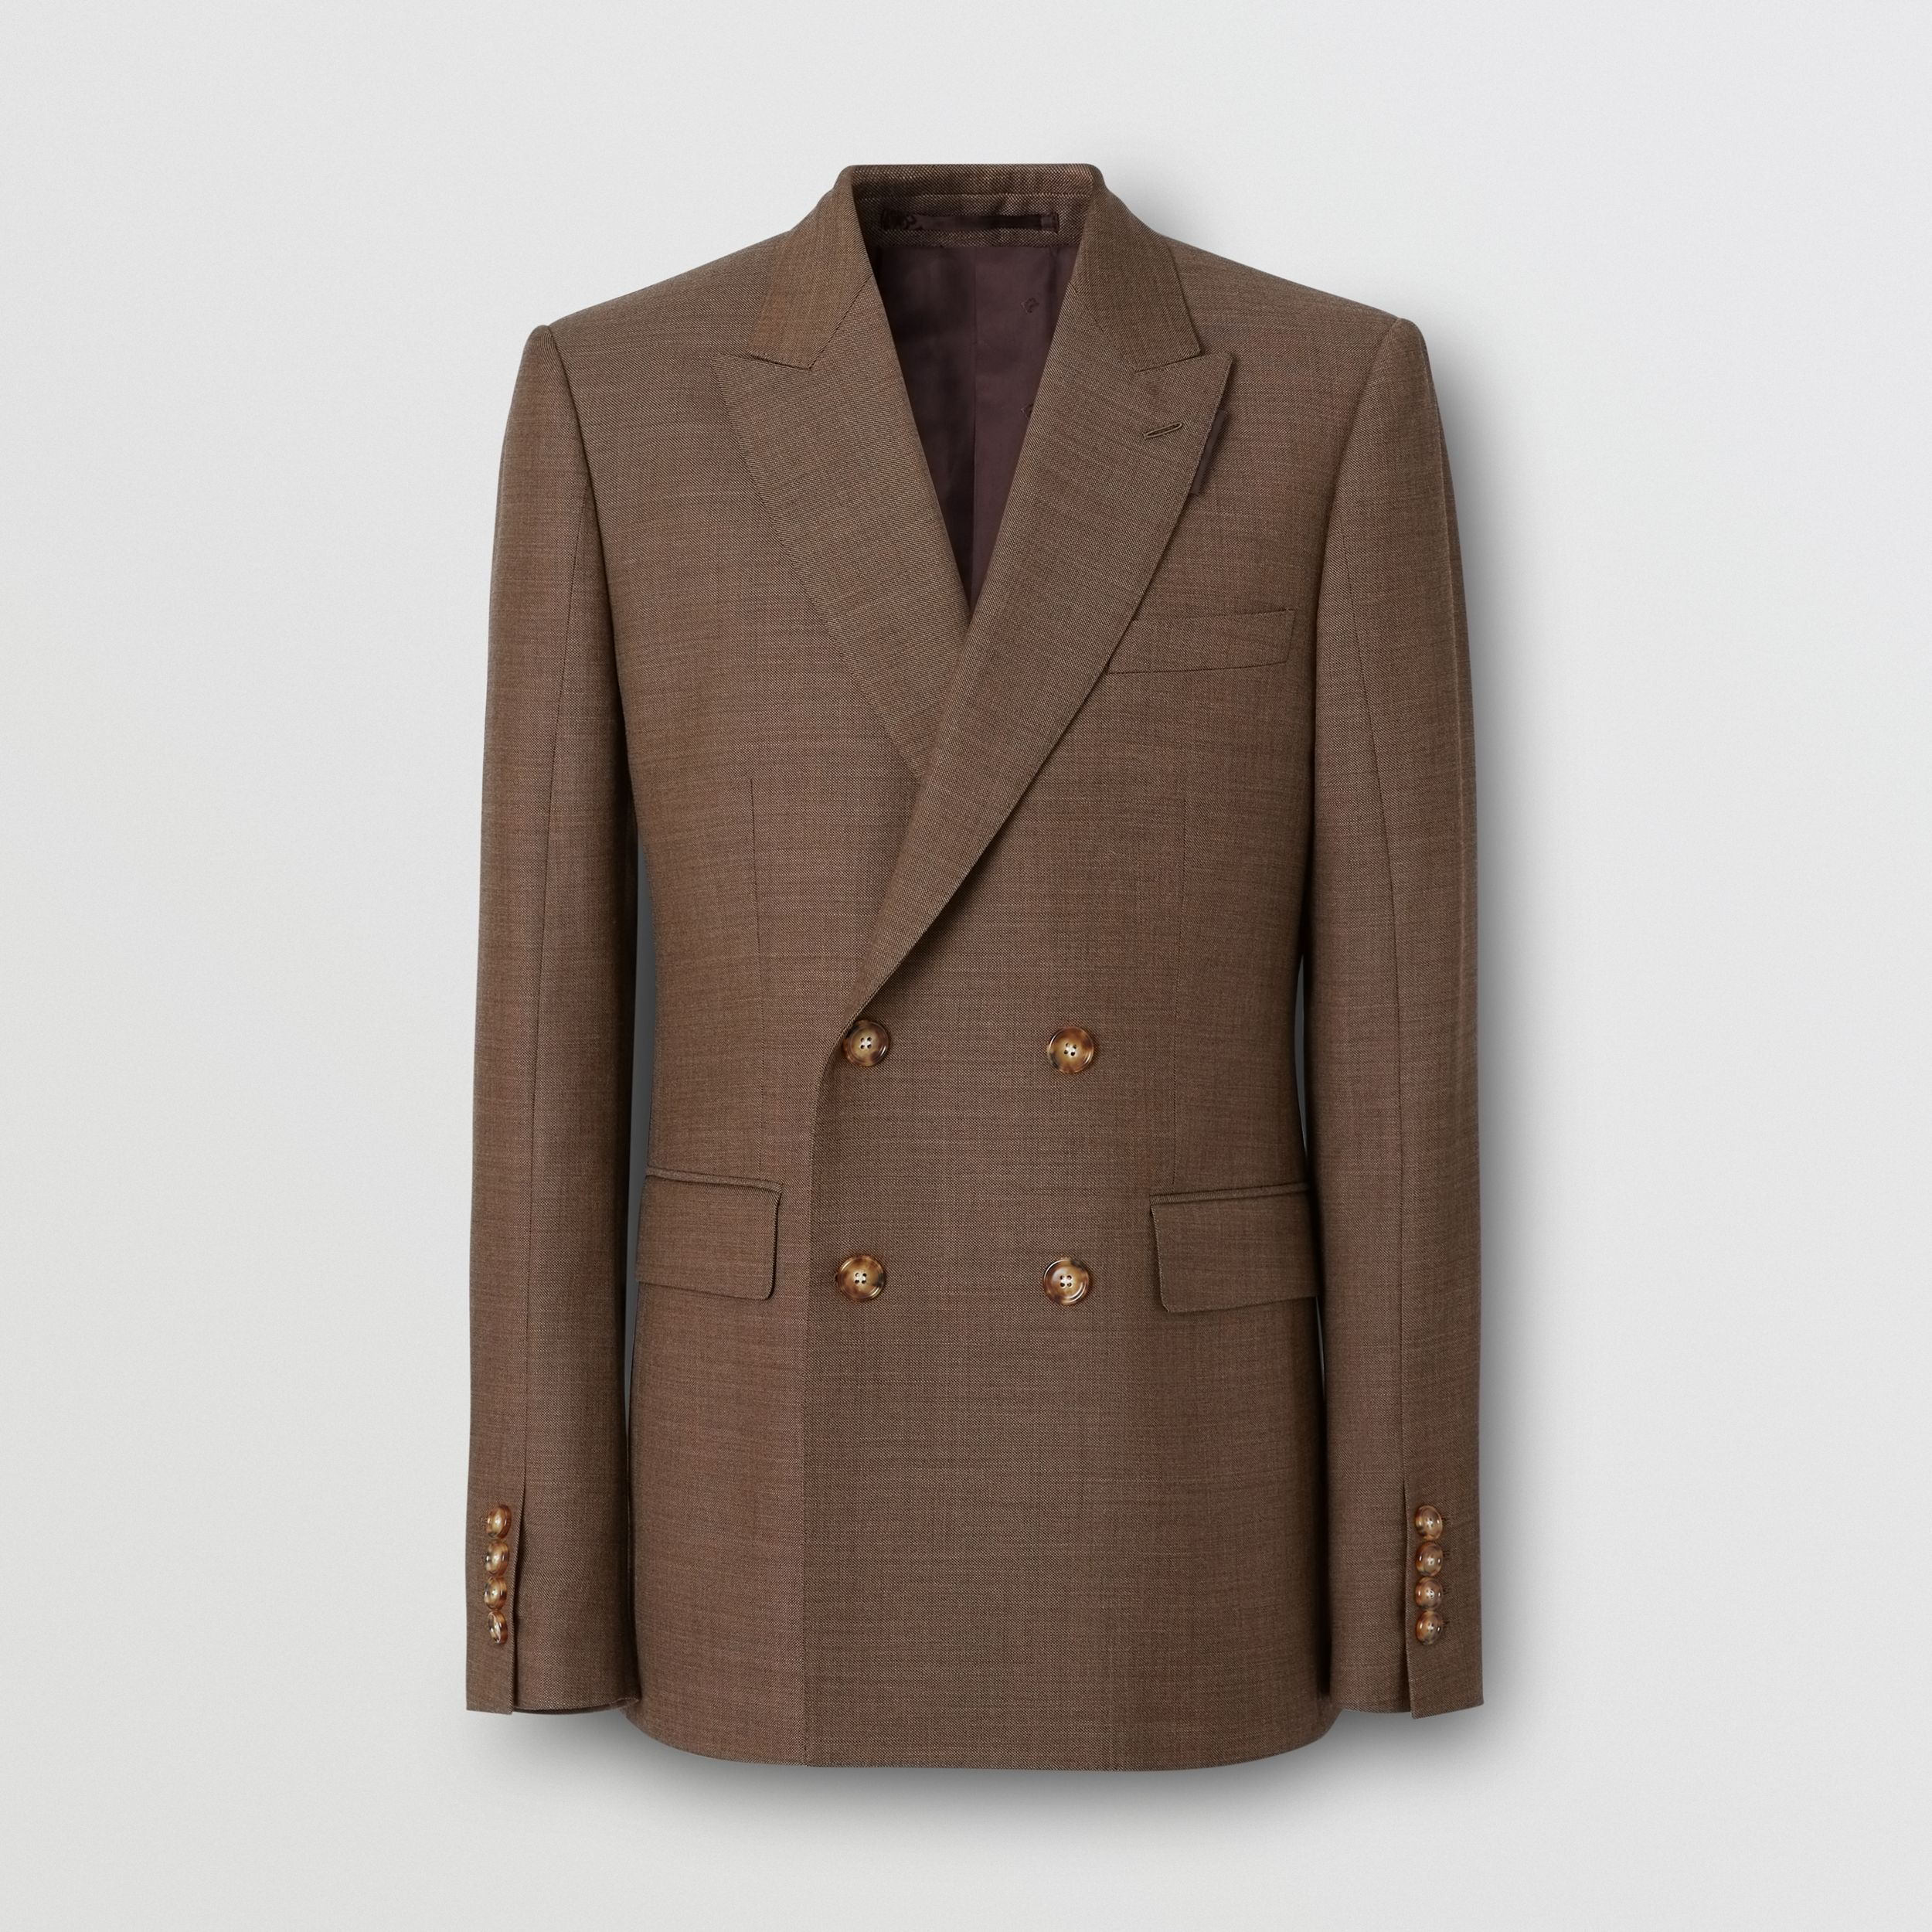 English Fit Sharkskin Wool Double-breasted Jacket in Deep Brown - Men | Burberry United Kingdom - 4